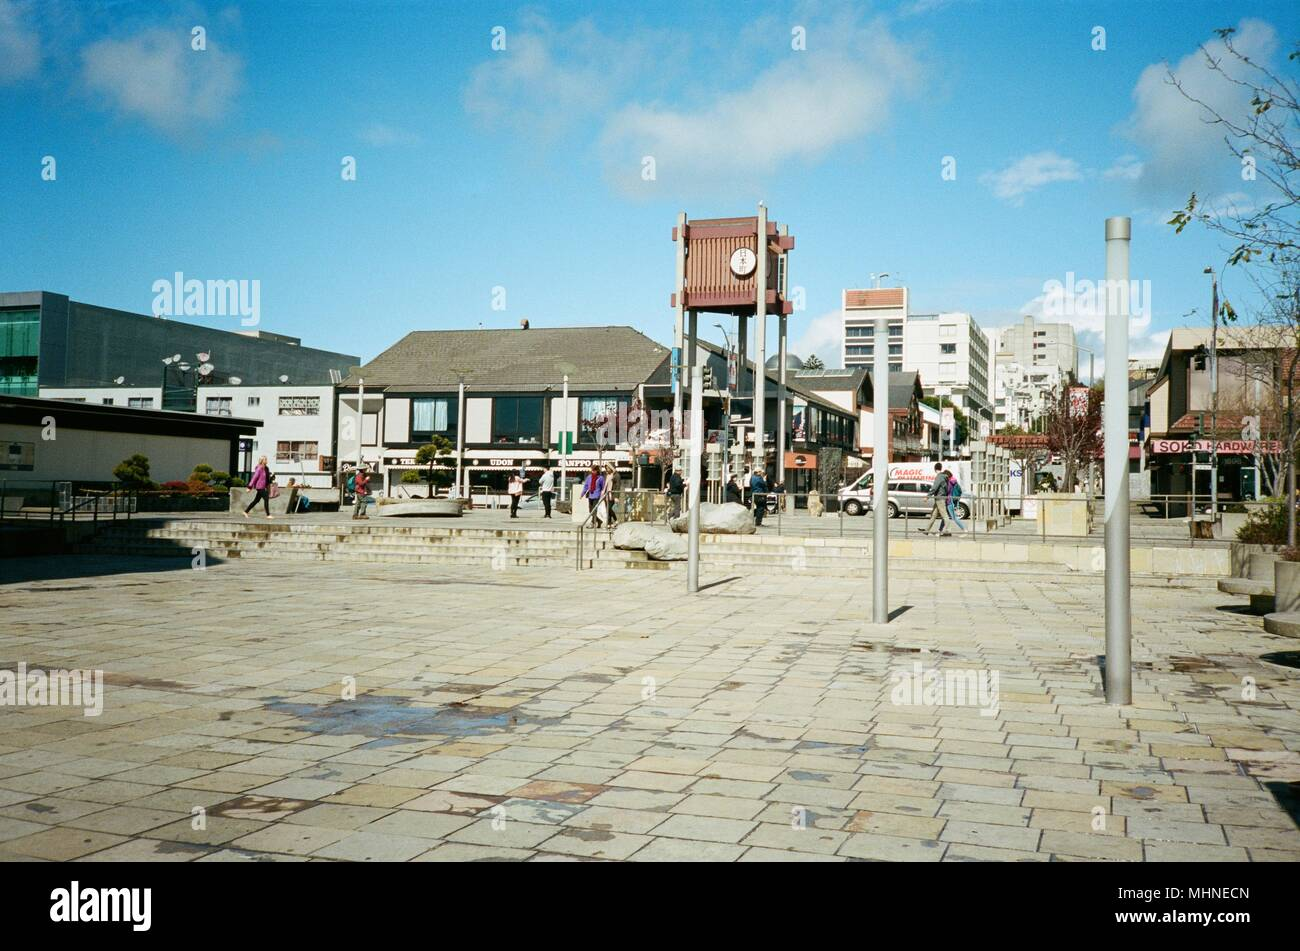 Peace Plaza, a public park in Japantown, San Francisco, California on a sunny day, March 14, 2018. () - Stock Image